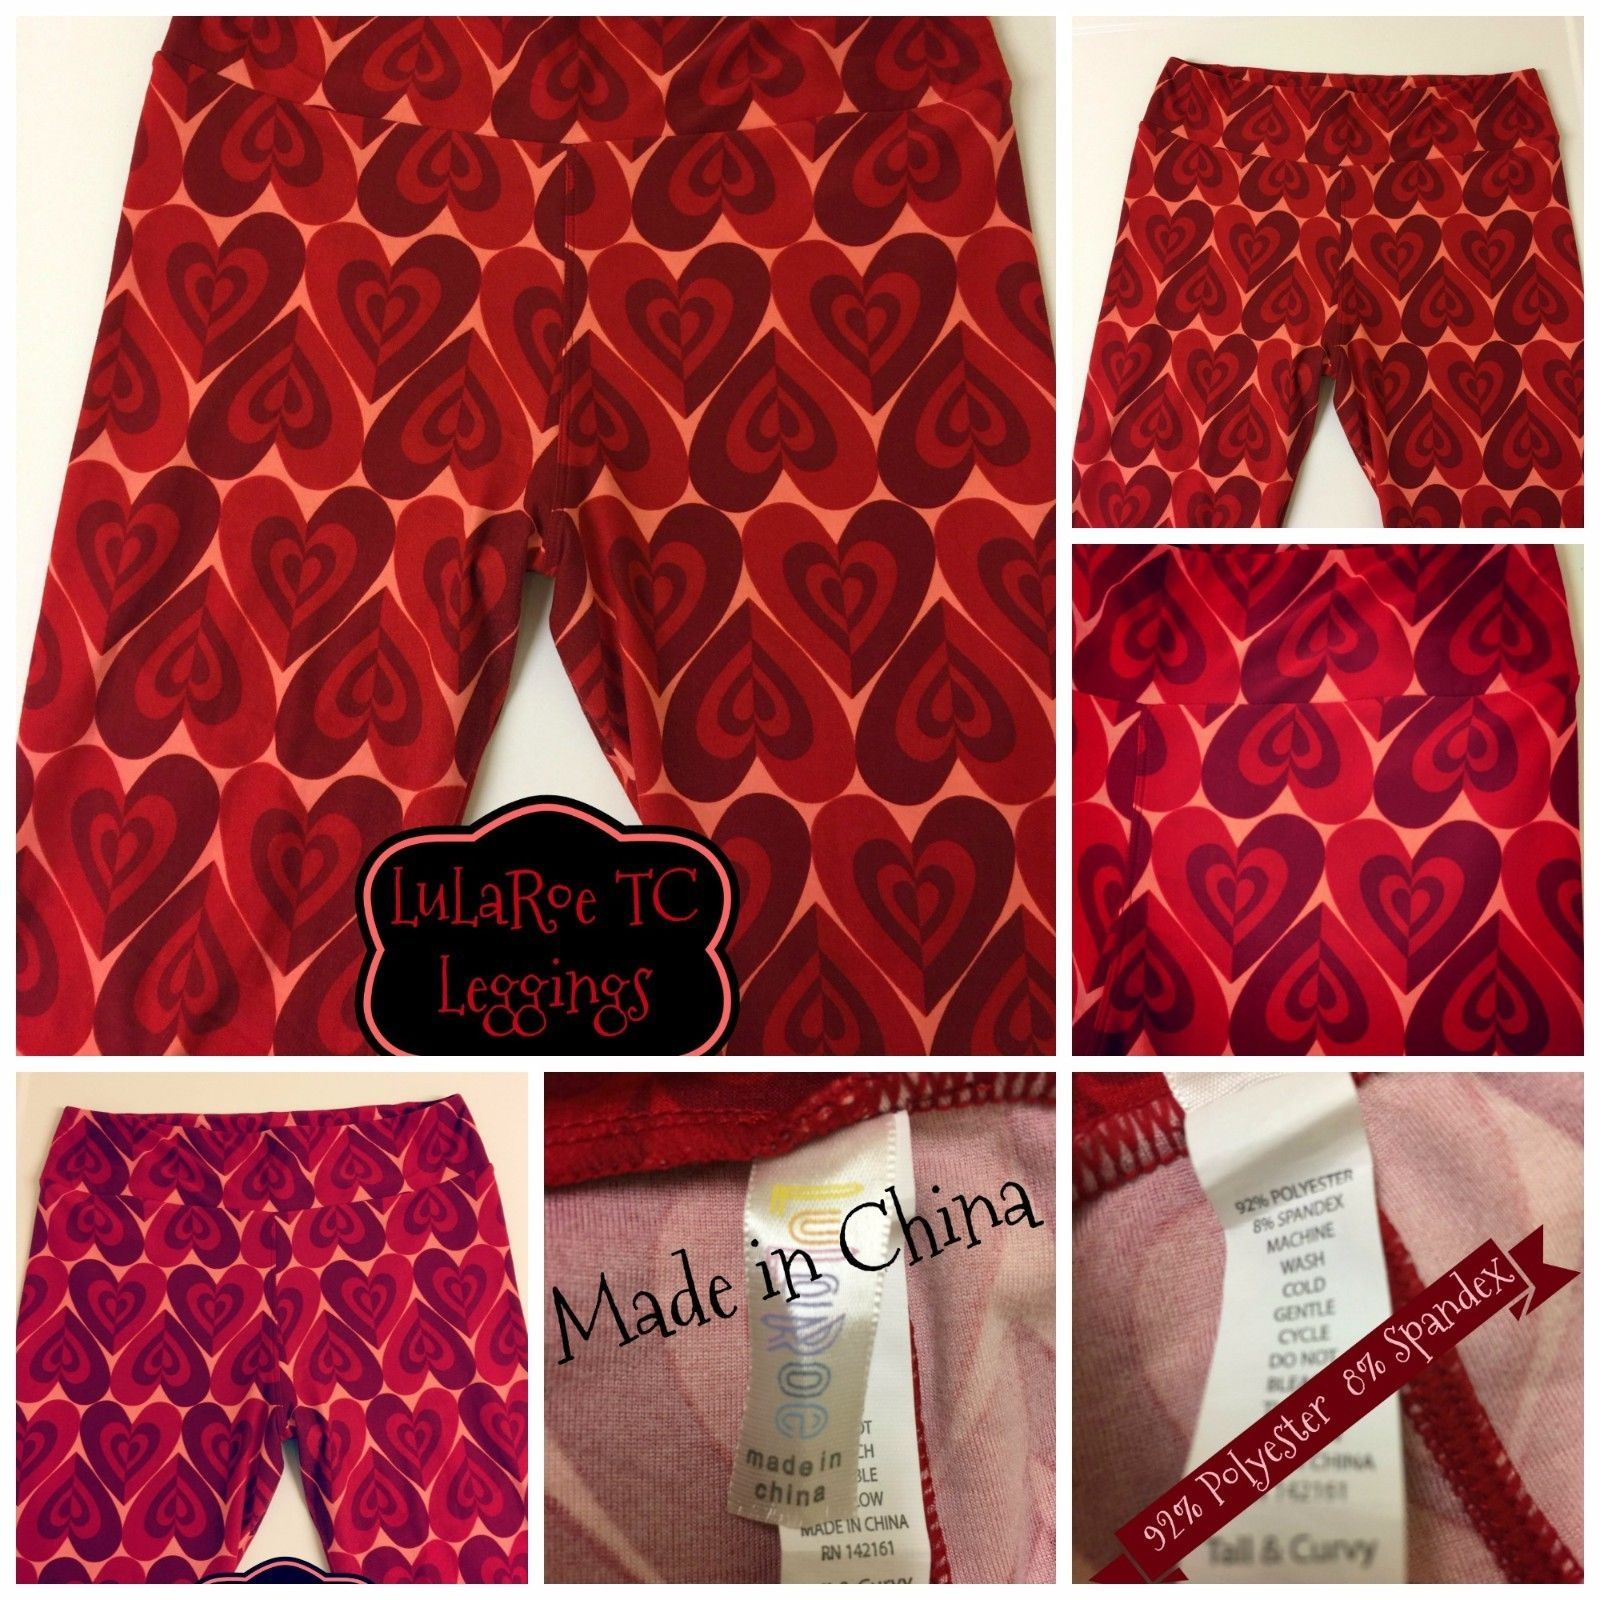 d87f80fa696461 #ValentinesDay Valentine's LuLaRoe TC Leggings Red Hearts & Pink Background  #ValentinesDay